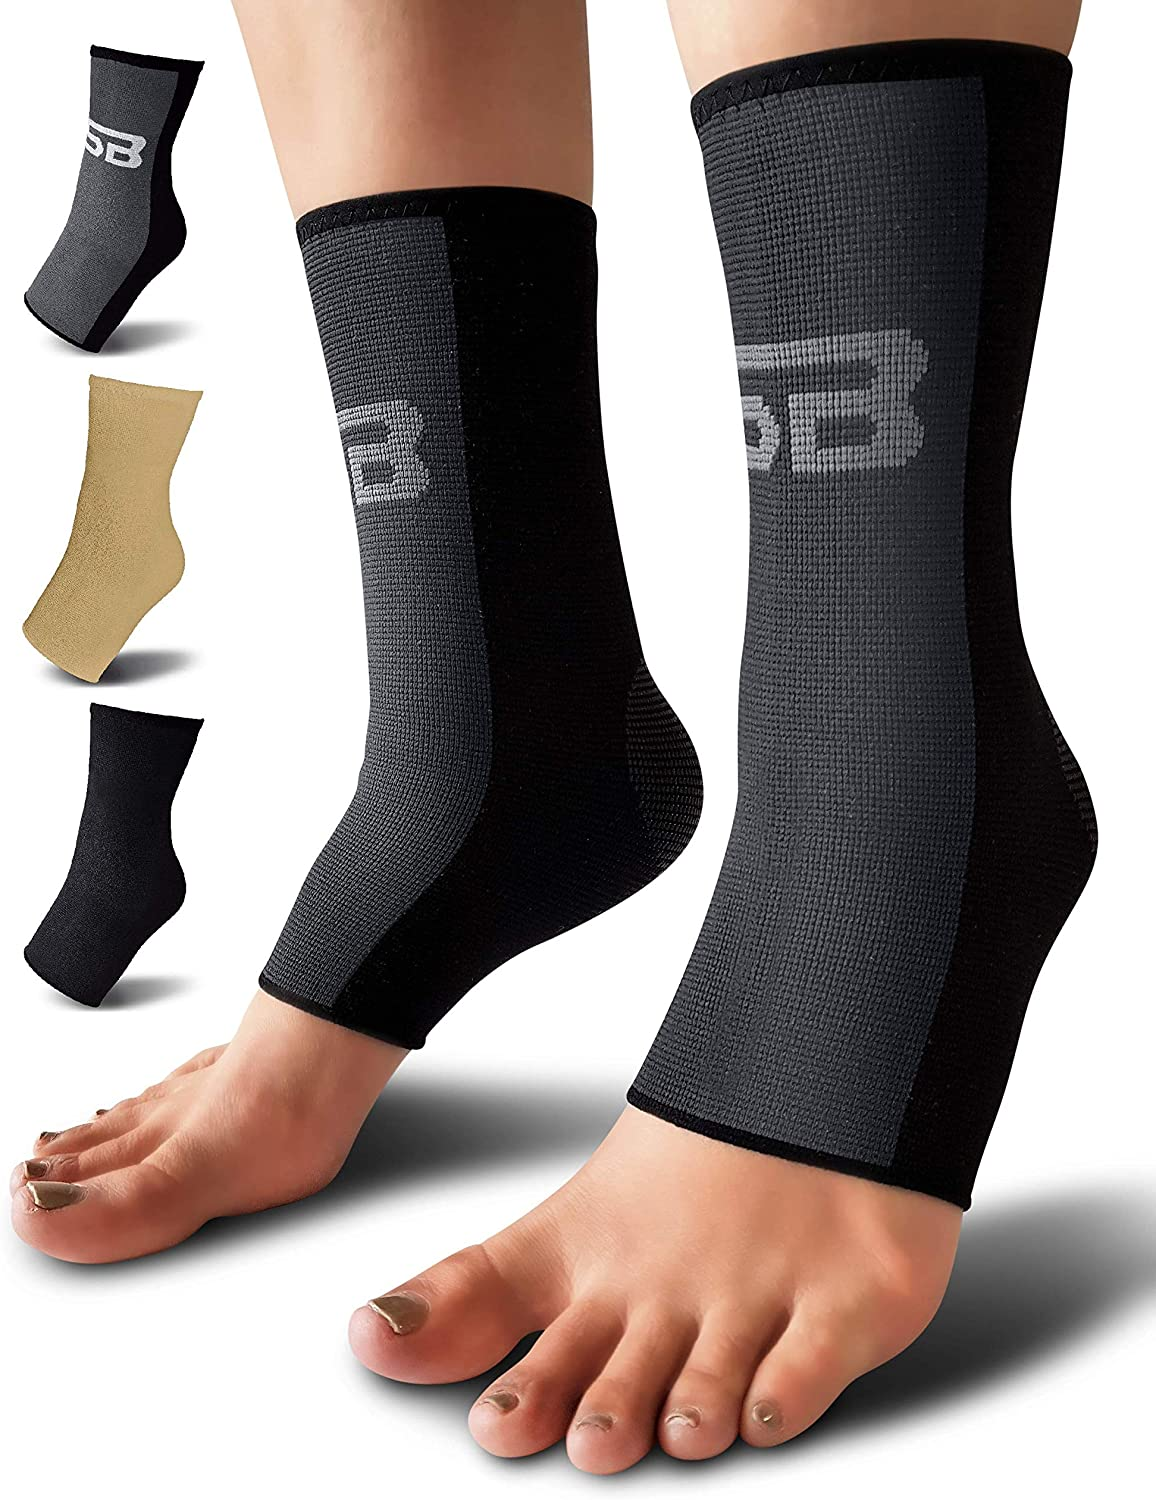 SB SOX Compression Ankle Brace (Pair) – Great Ankle Support That Stays in Place – For Sprained Ankle and Achilles Tendon Support – Perfect Ankle Sleeve for Sports, Any Use